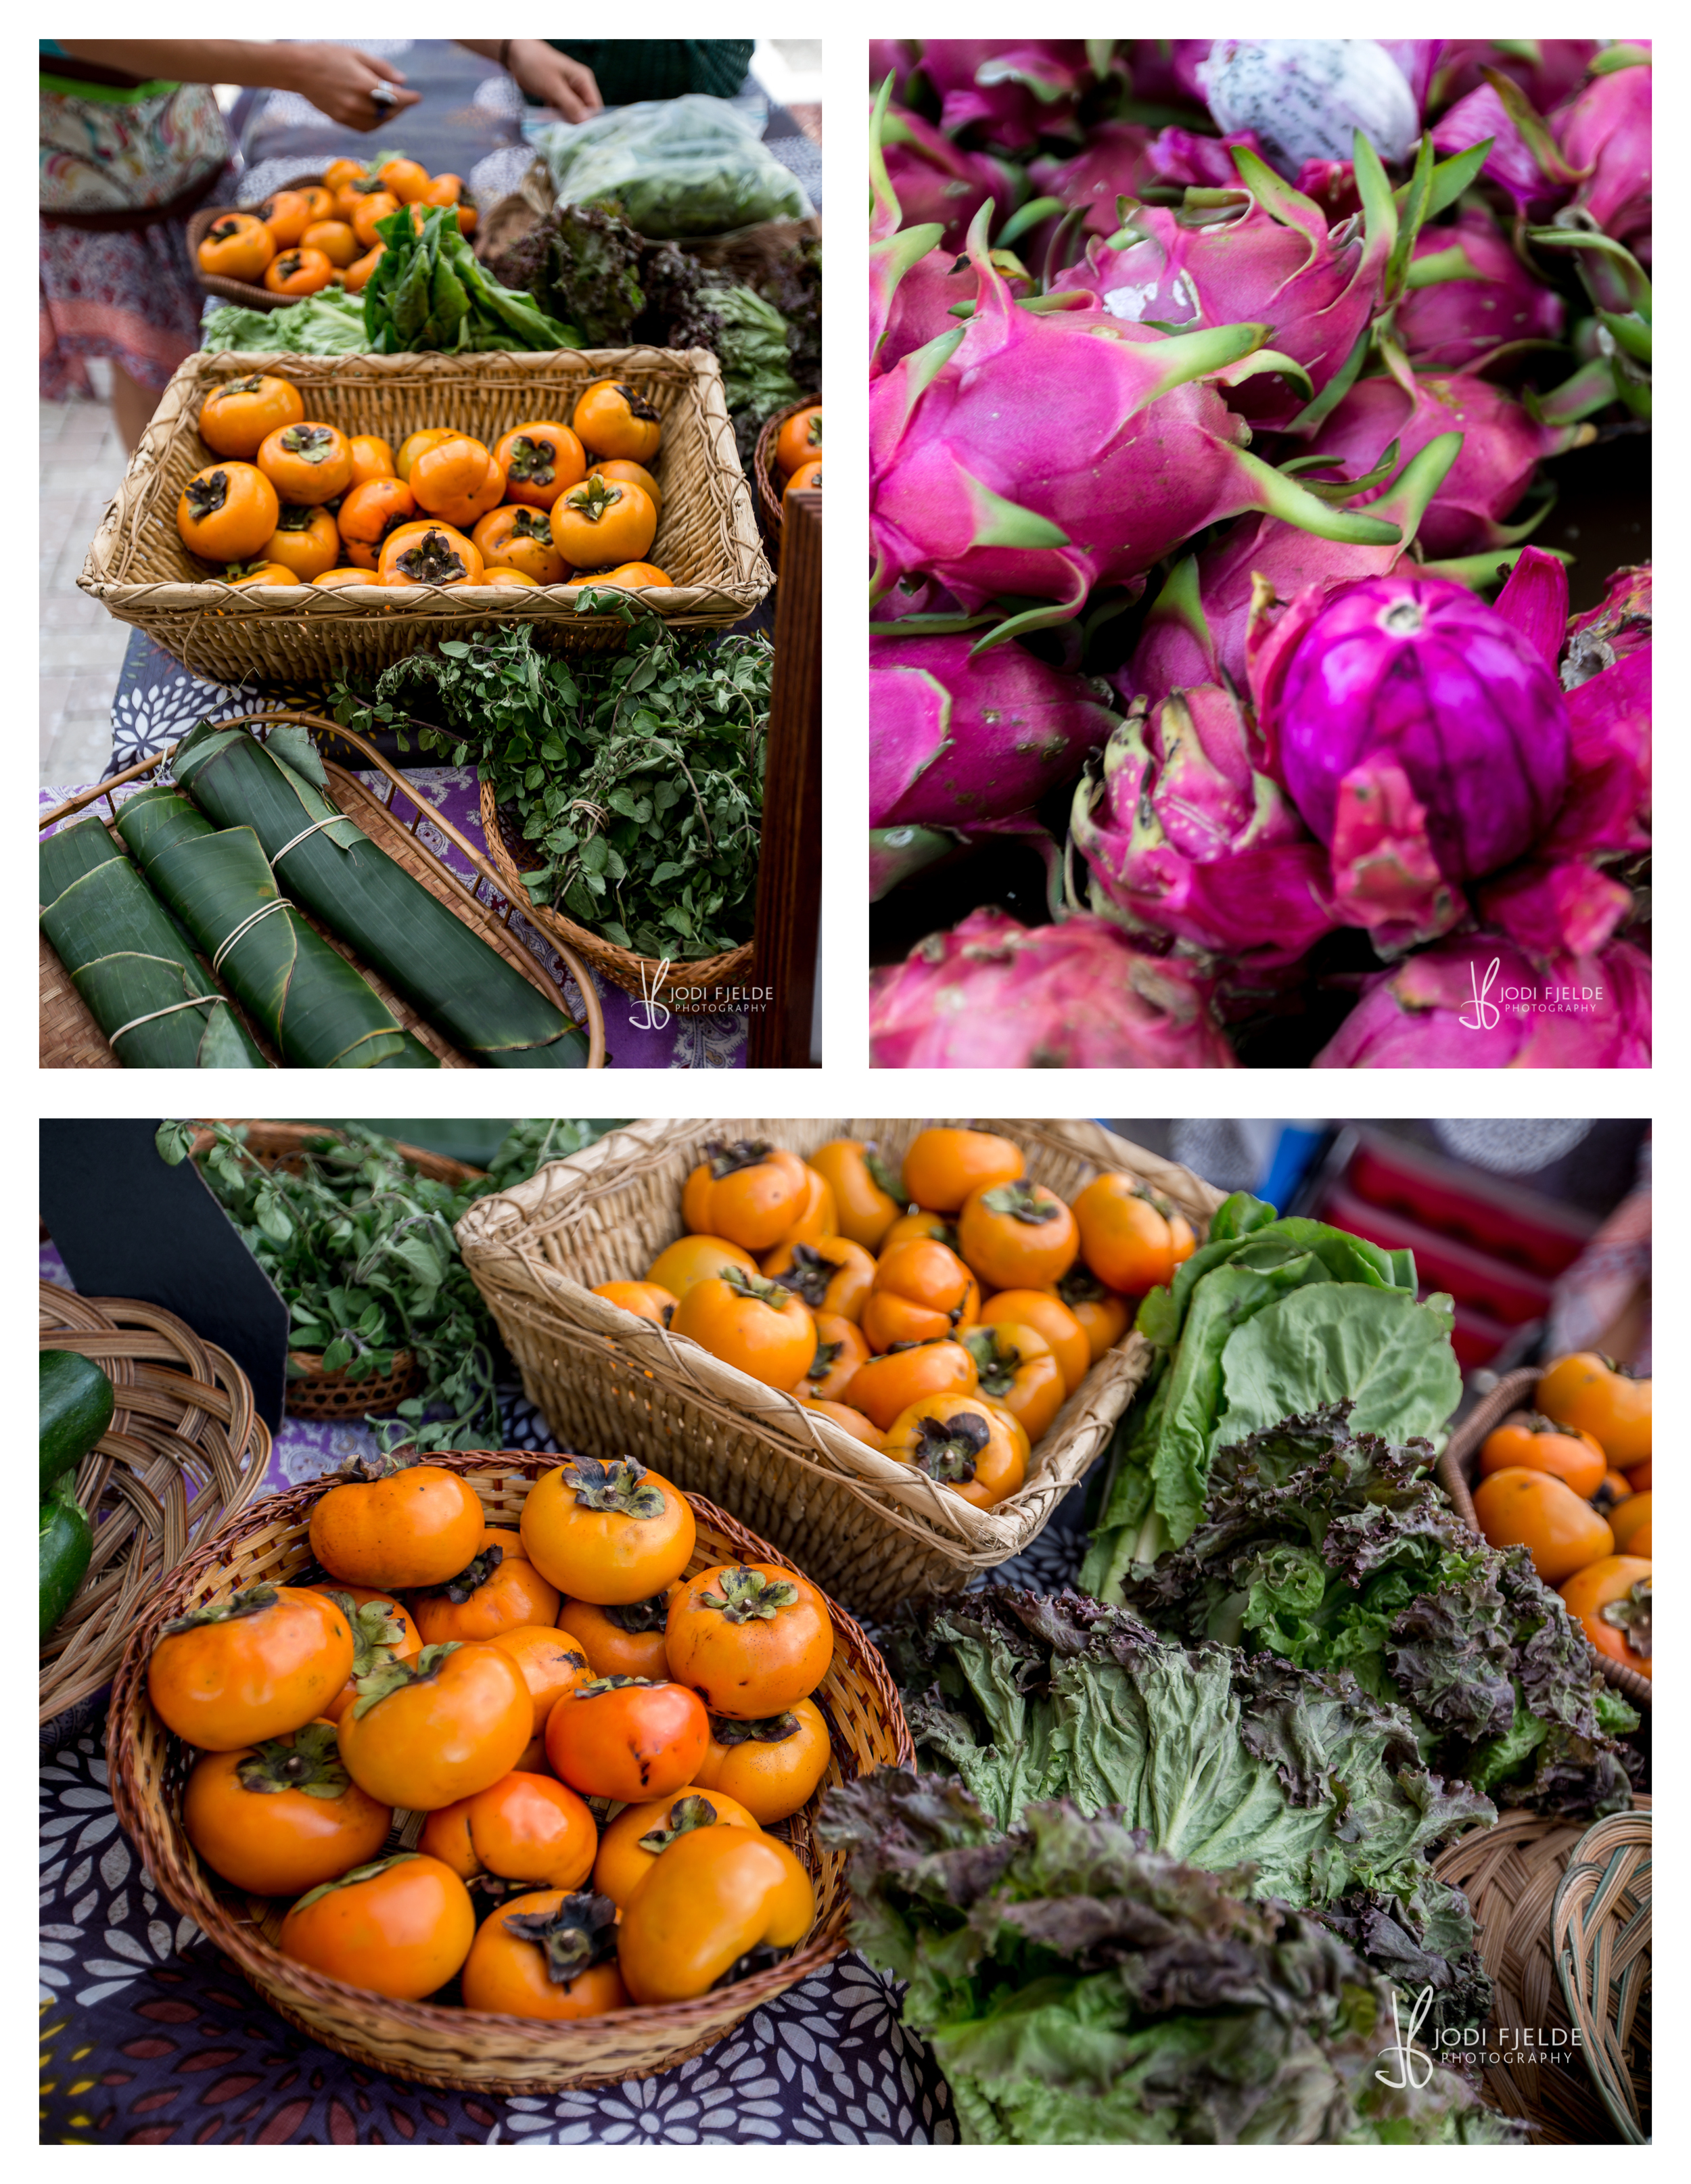 West_Palm_Beach_Green_Market_Organic_jodi_fjelde_Photography_3.jpg